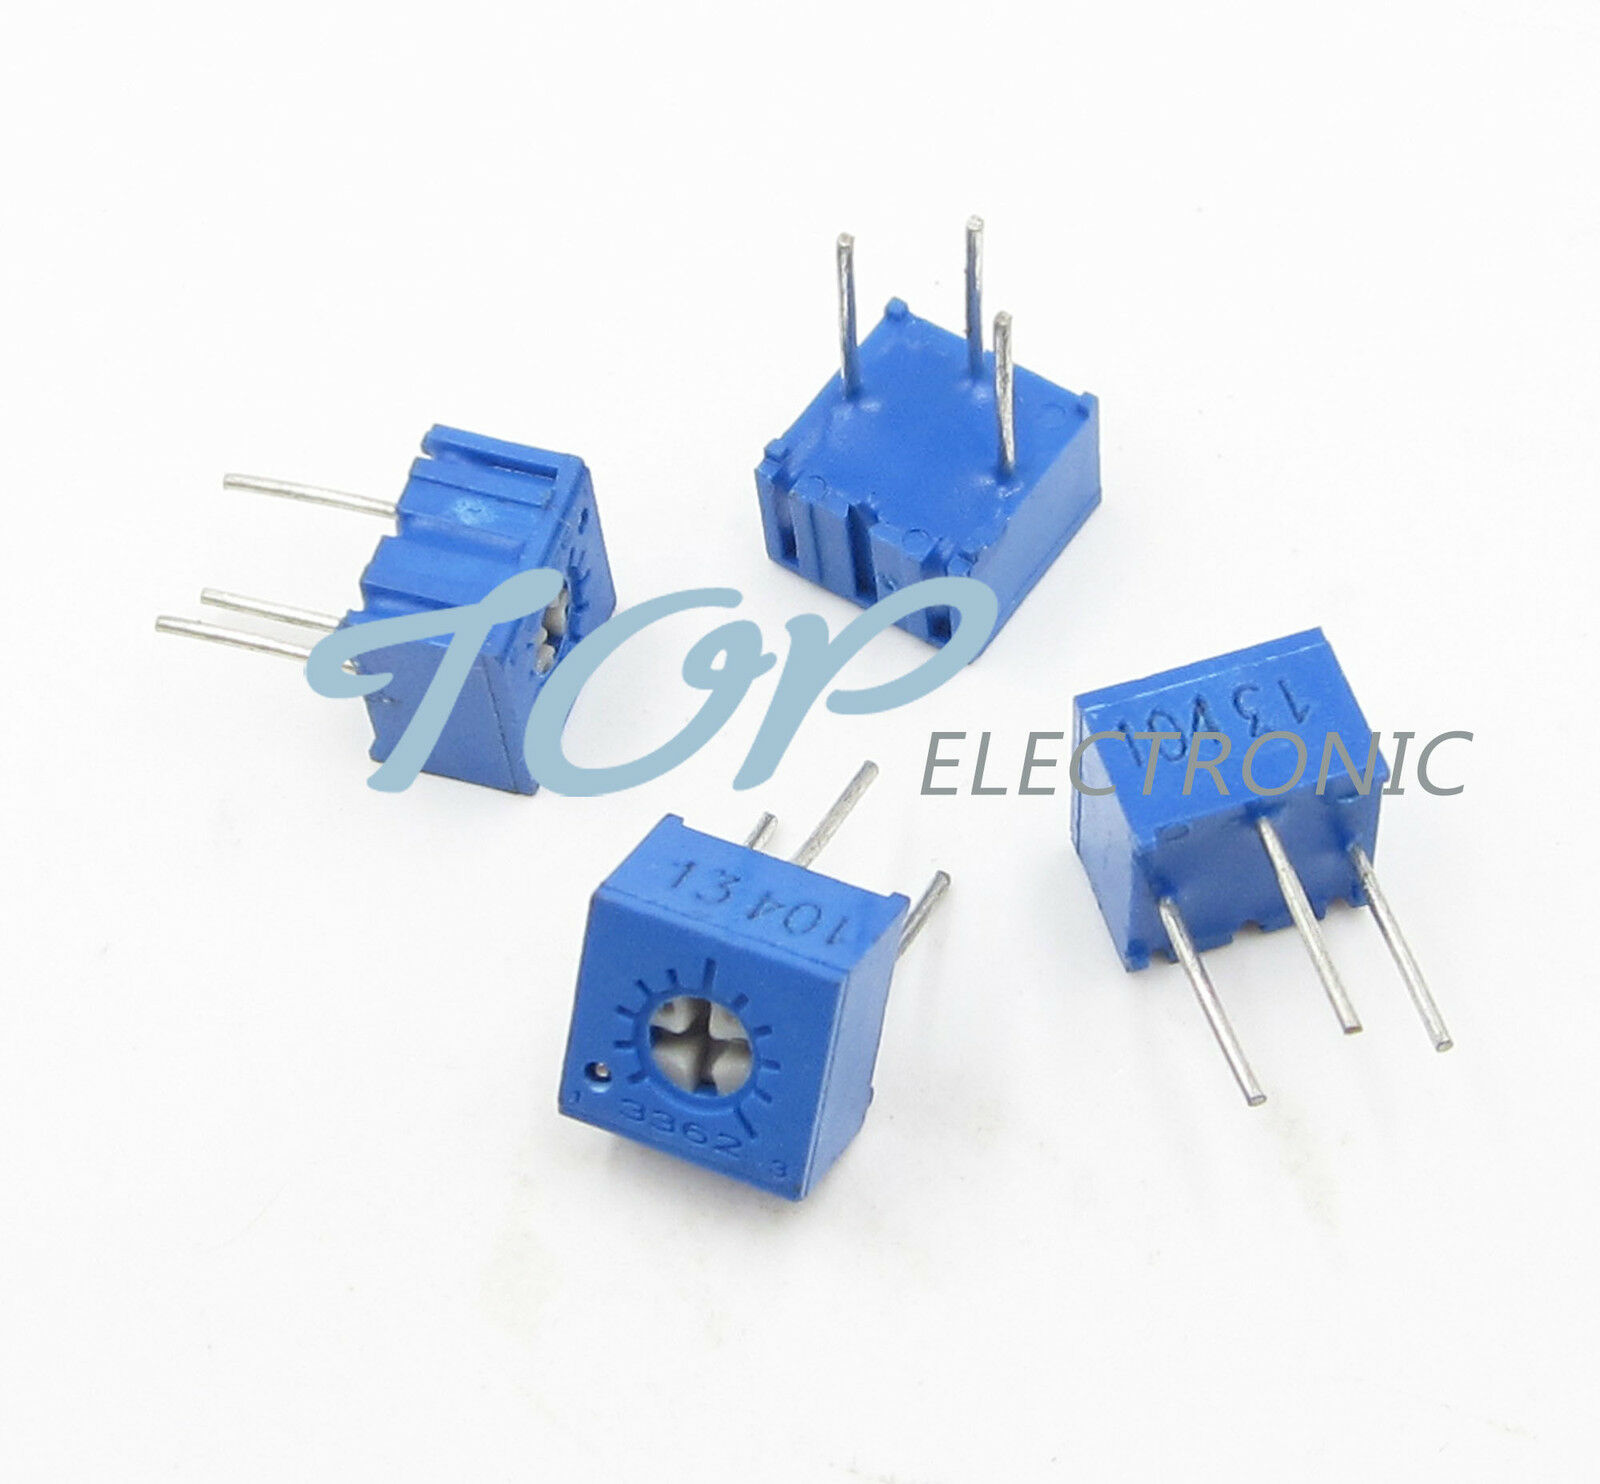 10pcs 3362p 204 3362 P 200k Ohm High Precision Variable Resistor Potentiometer Wiring Picture 1 Of